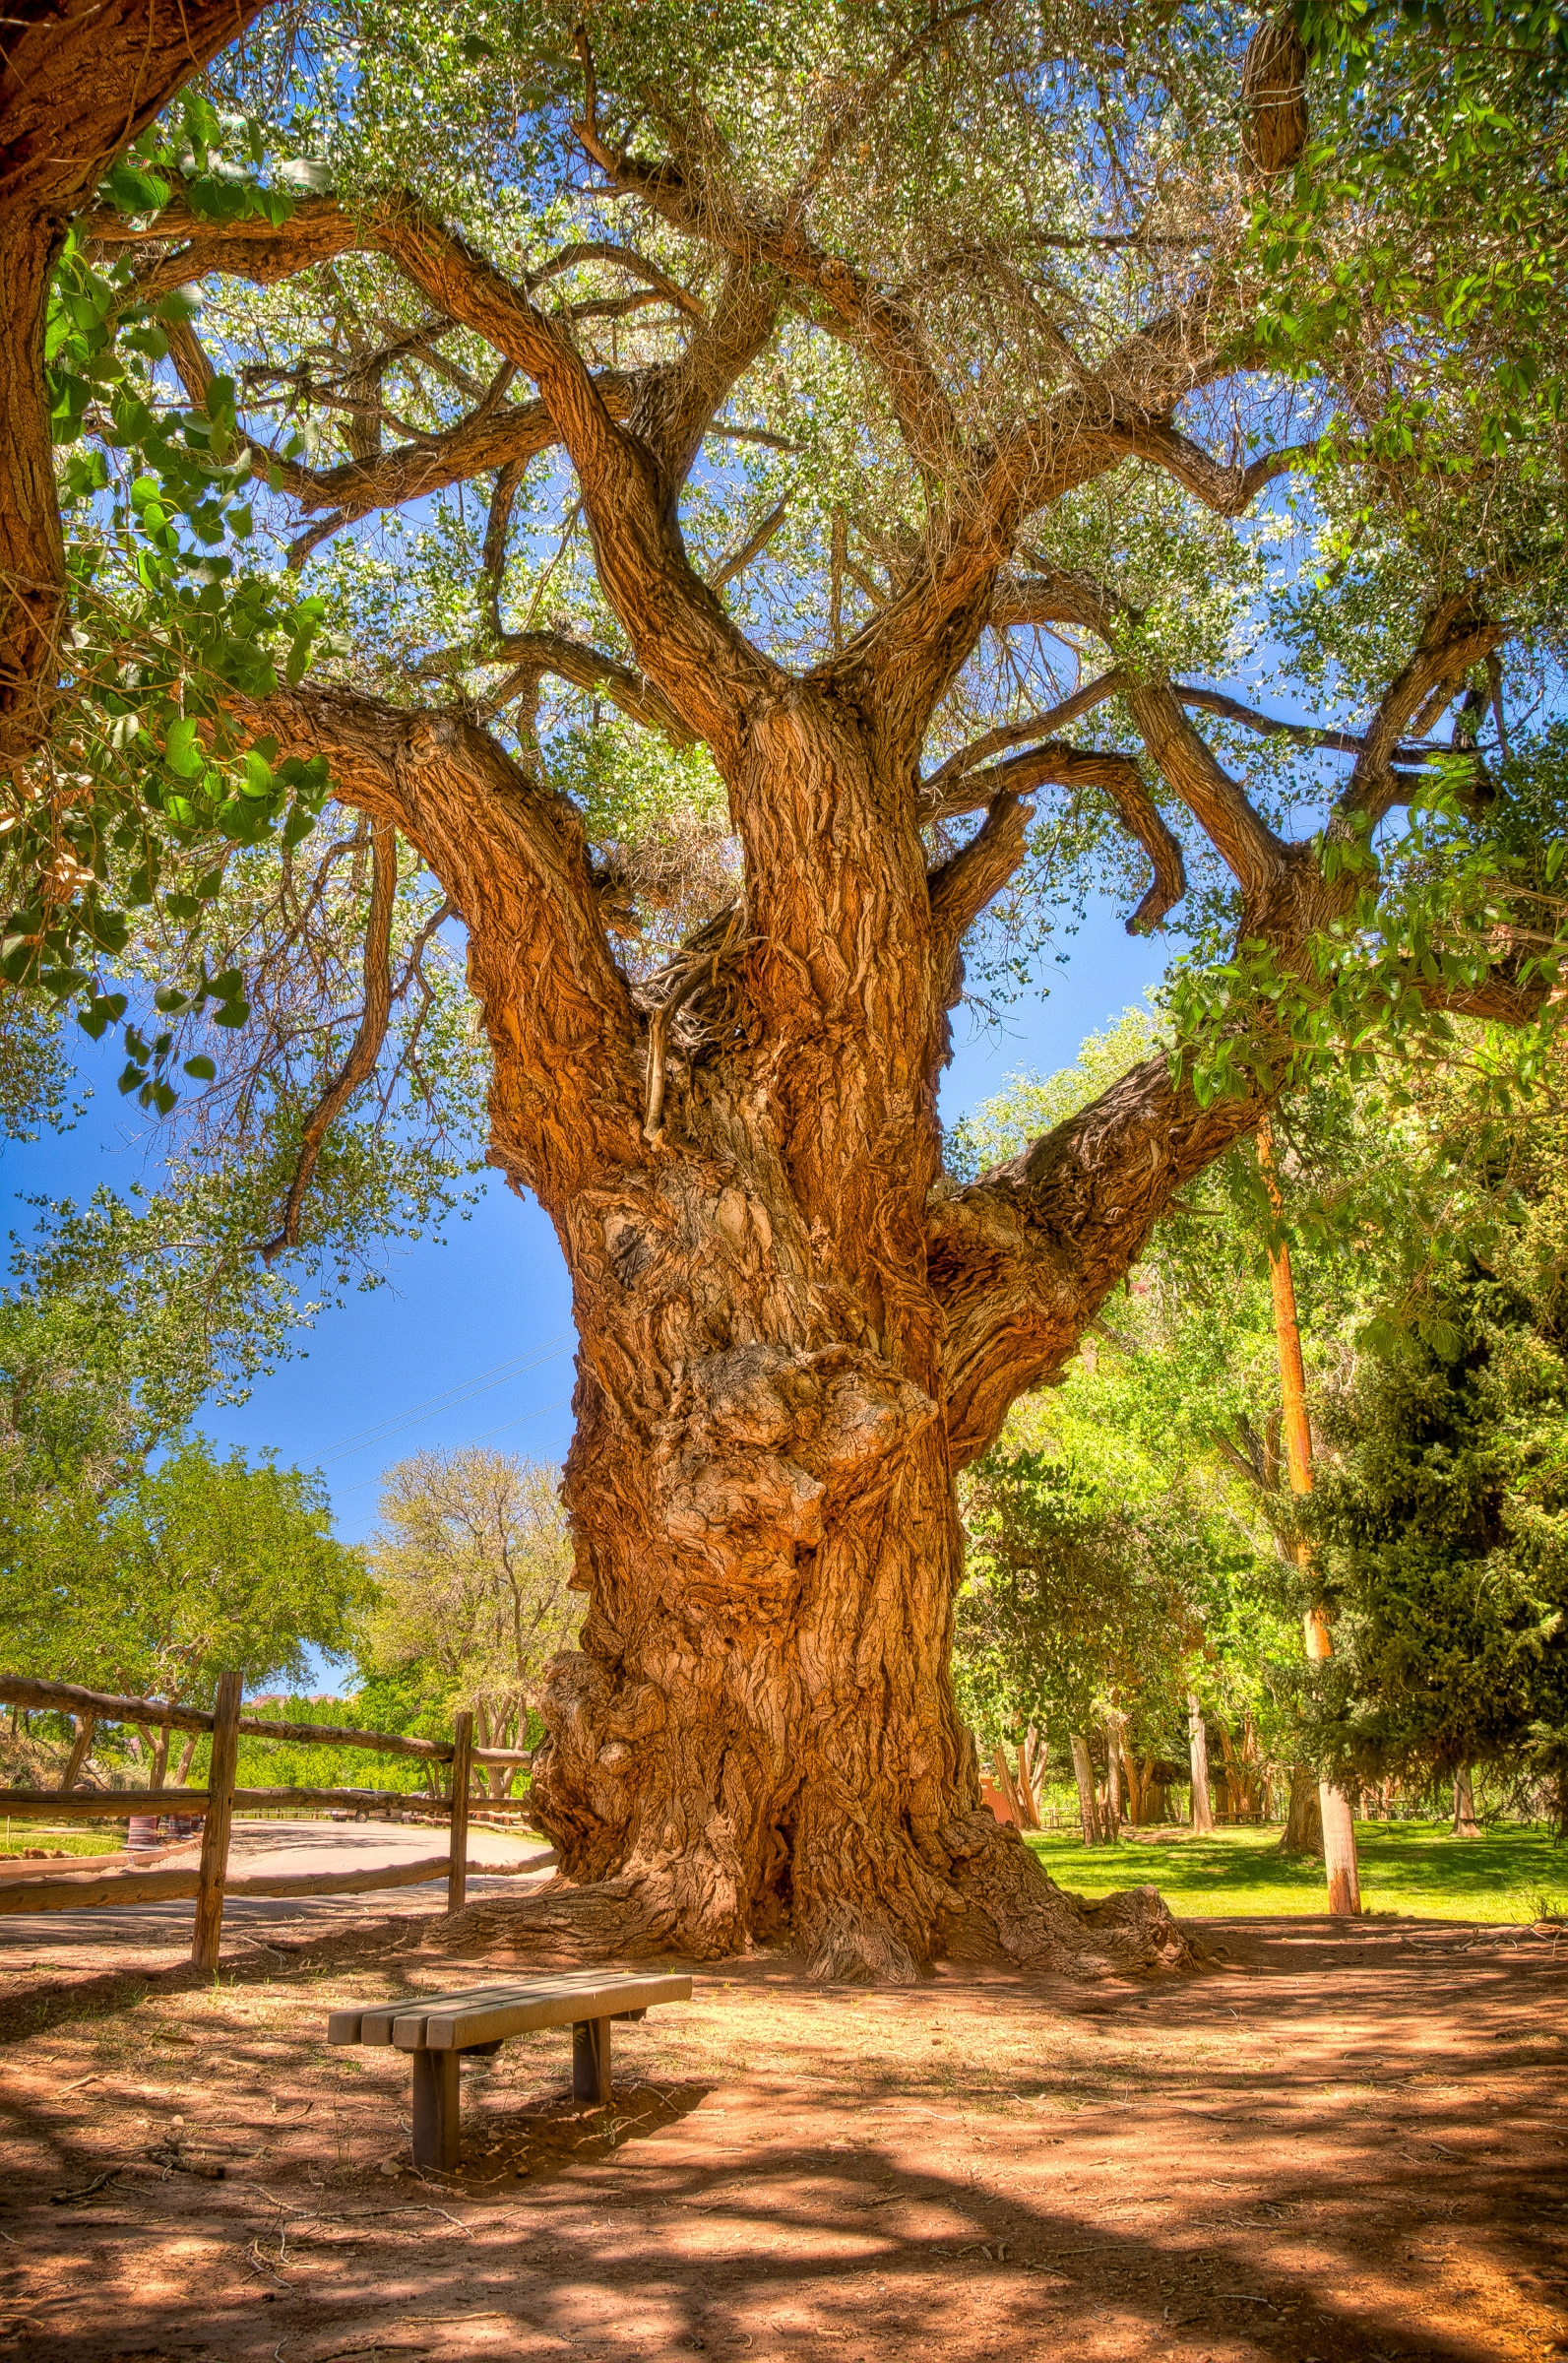 Gnarled and ancient Cottonwood tree along Scenic Drive in the Fruita District of Capitol Reef Natioal Park.